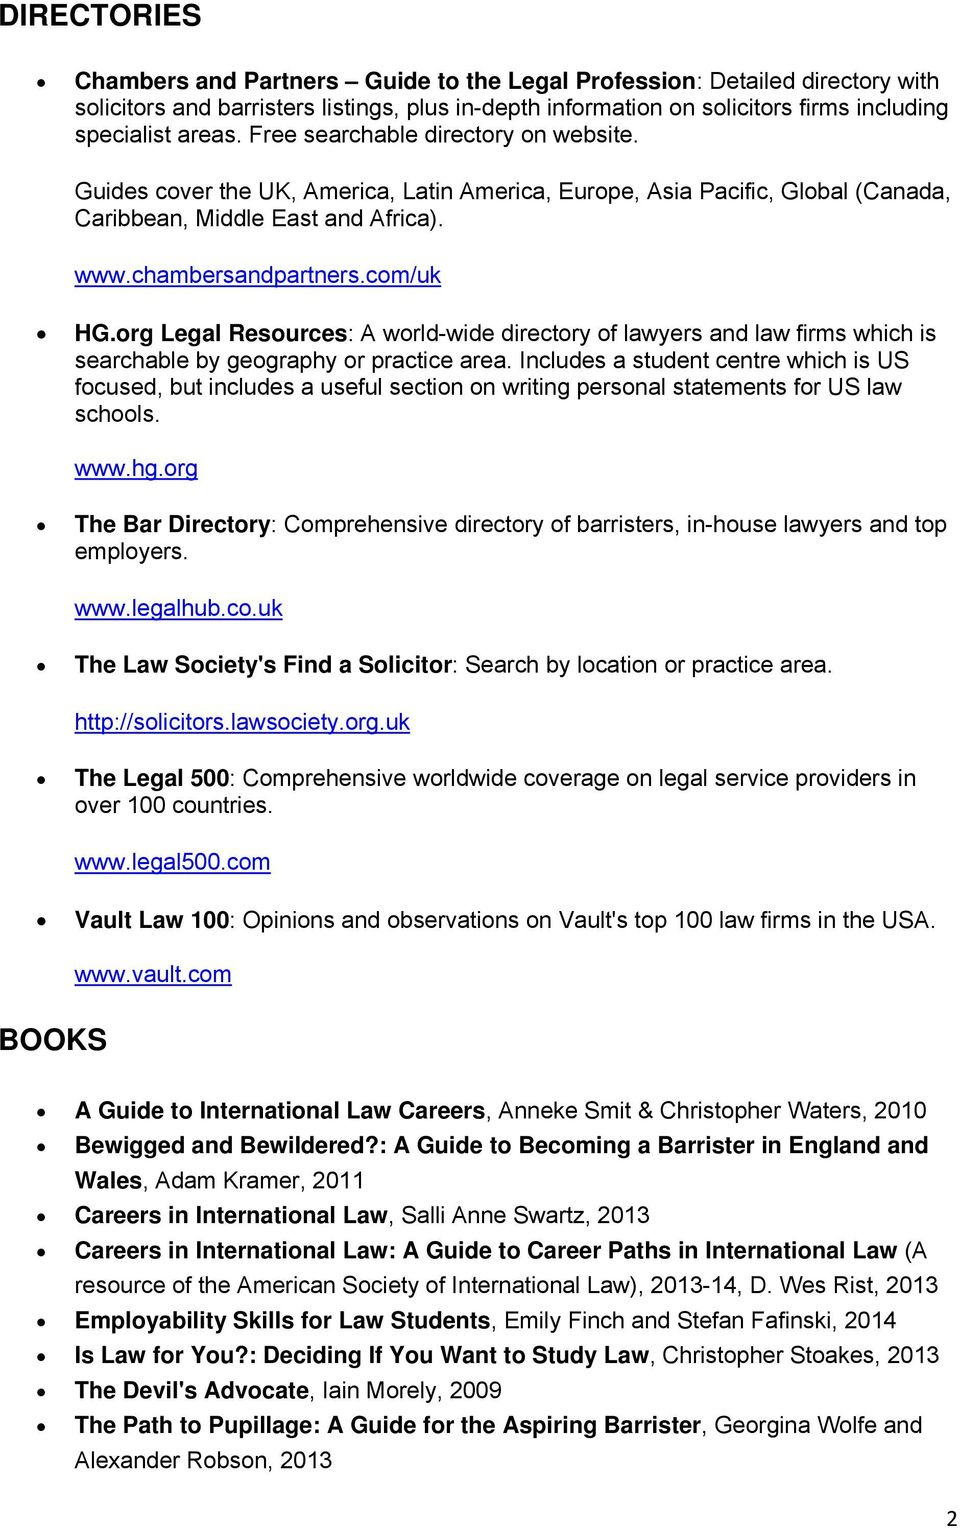 The Good Resources Guide - PDF